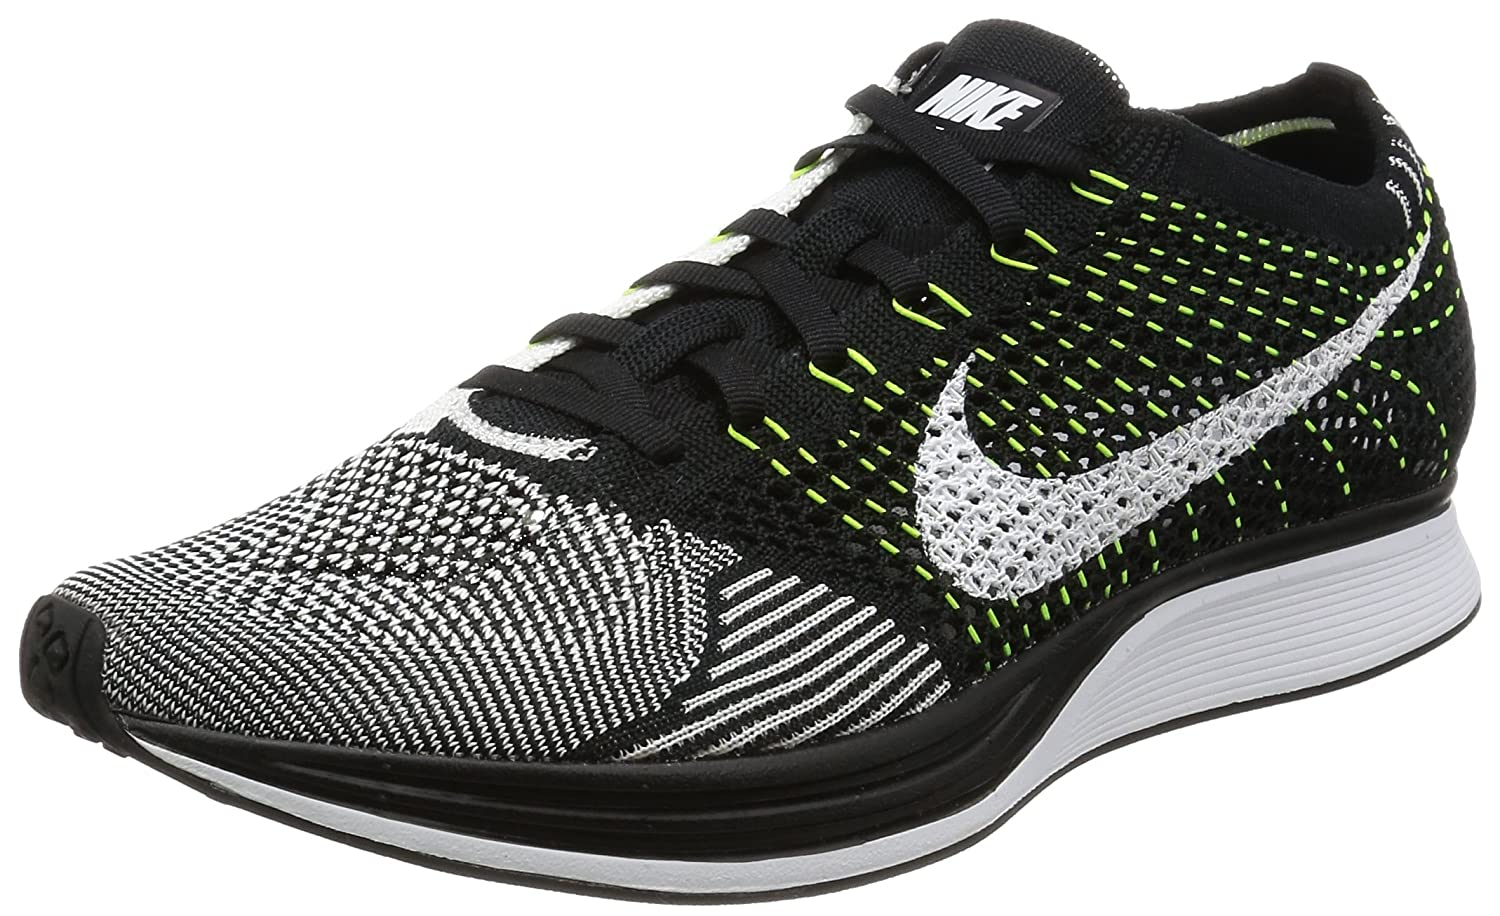 pretty nice 92445 8c6b8 Amazon.com   Nike Flyknit Racer Unisex Running Trainers 526628 Sneakers  Shoes (4.5 D(M) US, Black White White 011)   Road Running